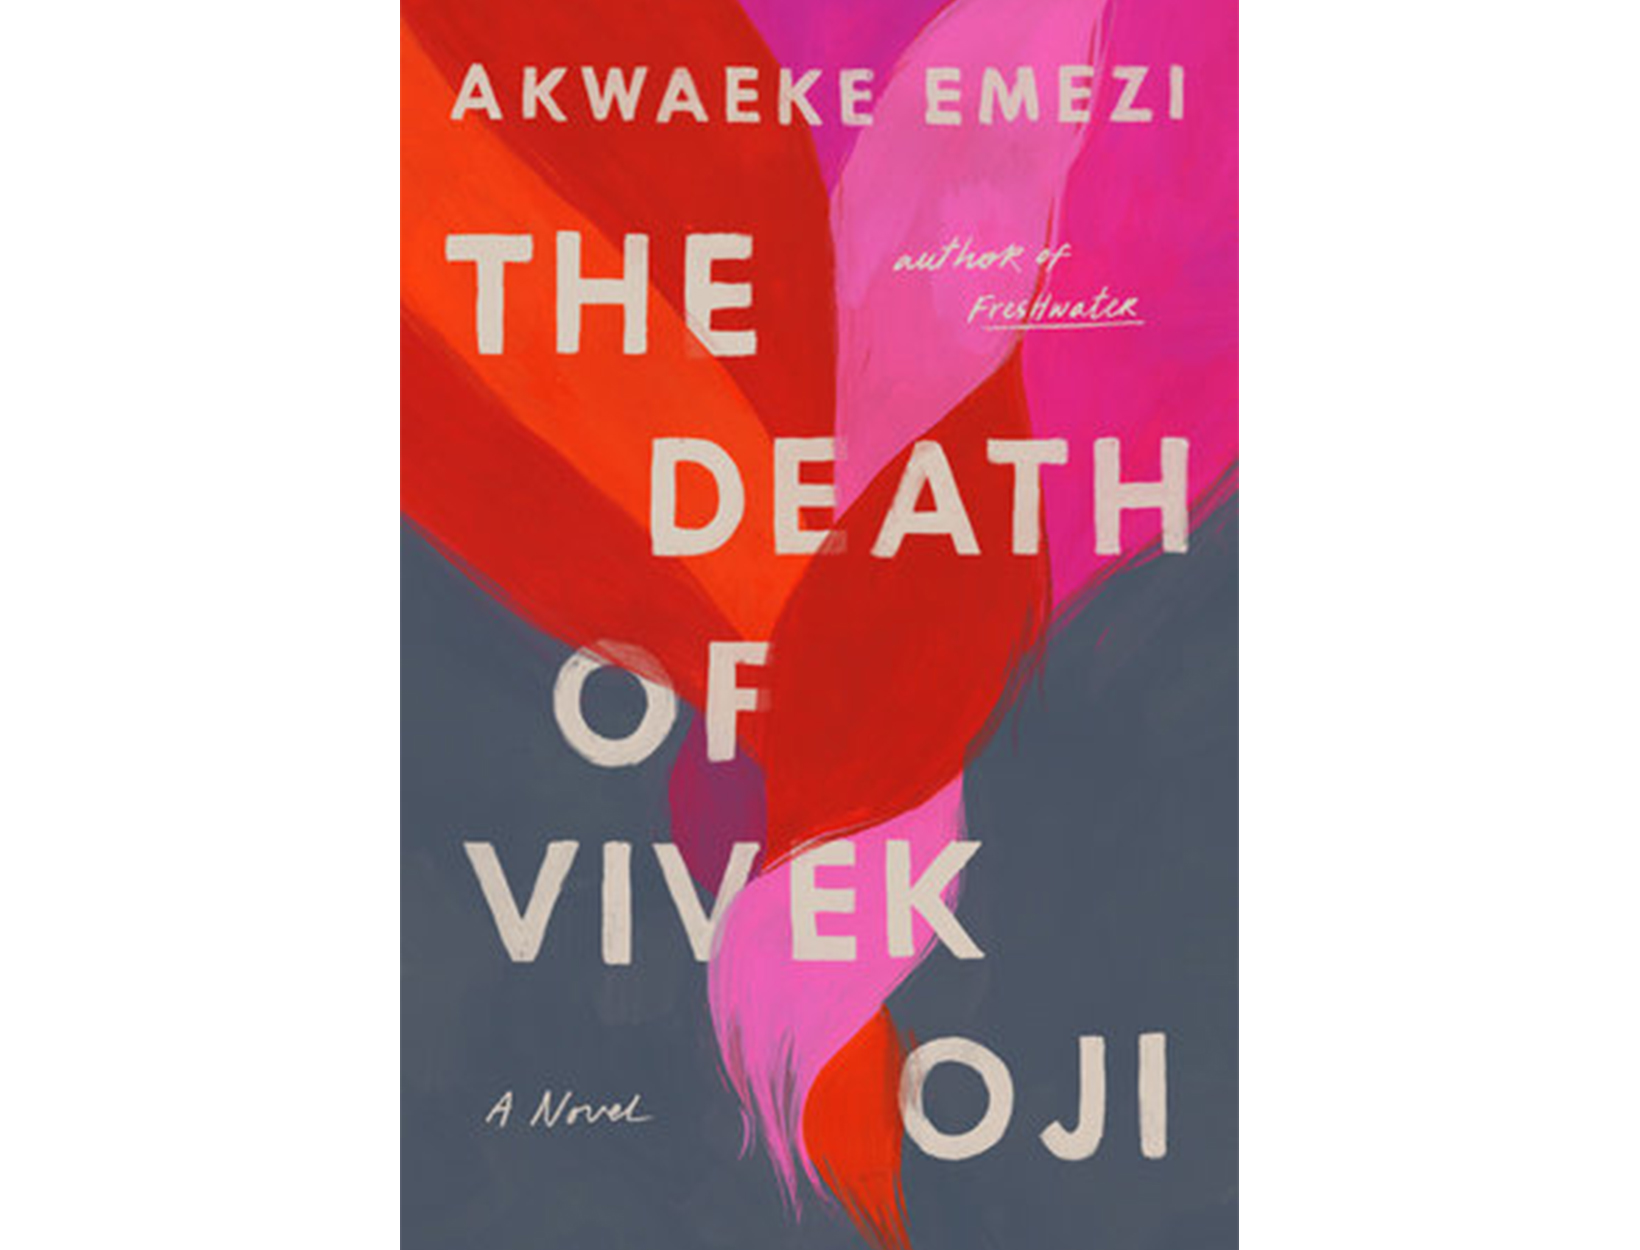 <em>The Death of Vivek Oji</em> by Akwaeke Emezi